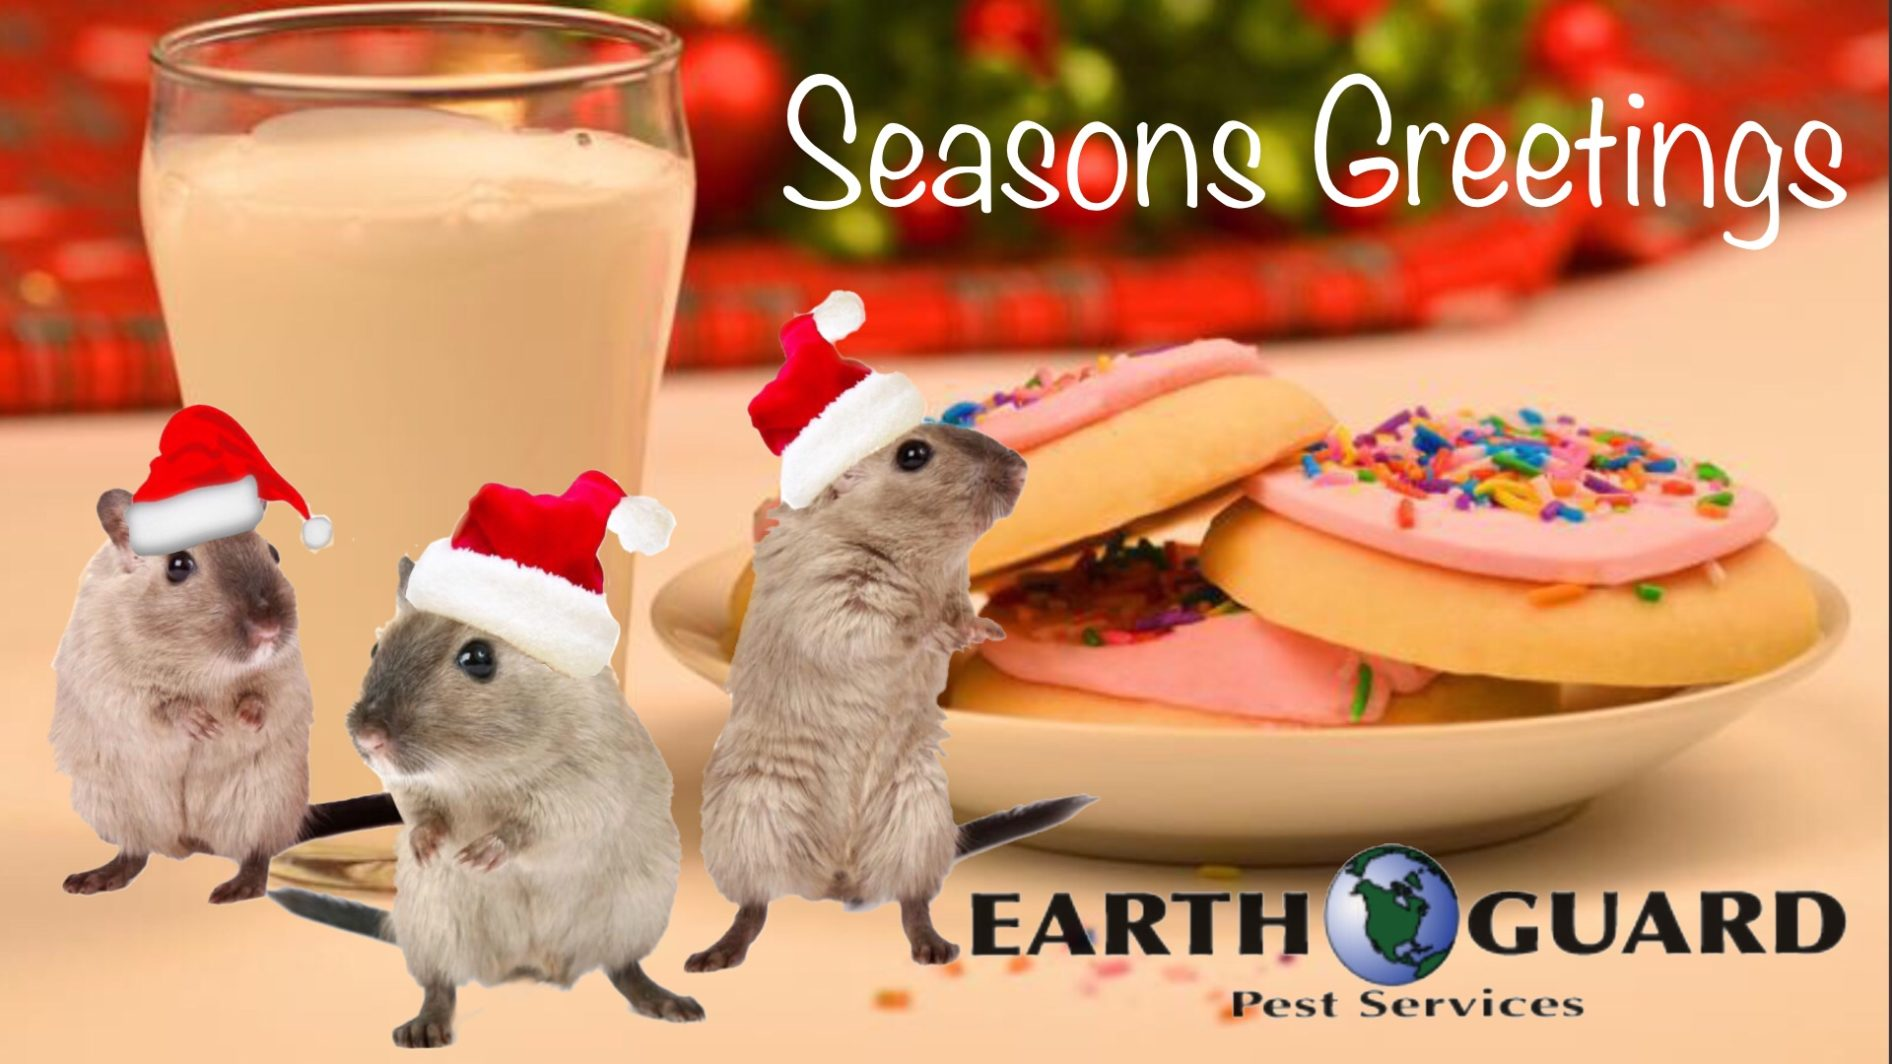 Seasons Greetings holiday graphic with mice and cookies